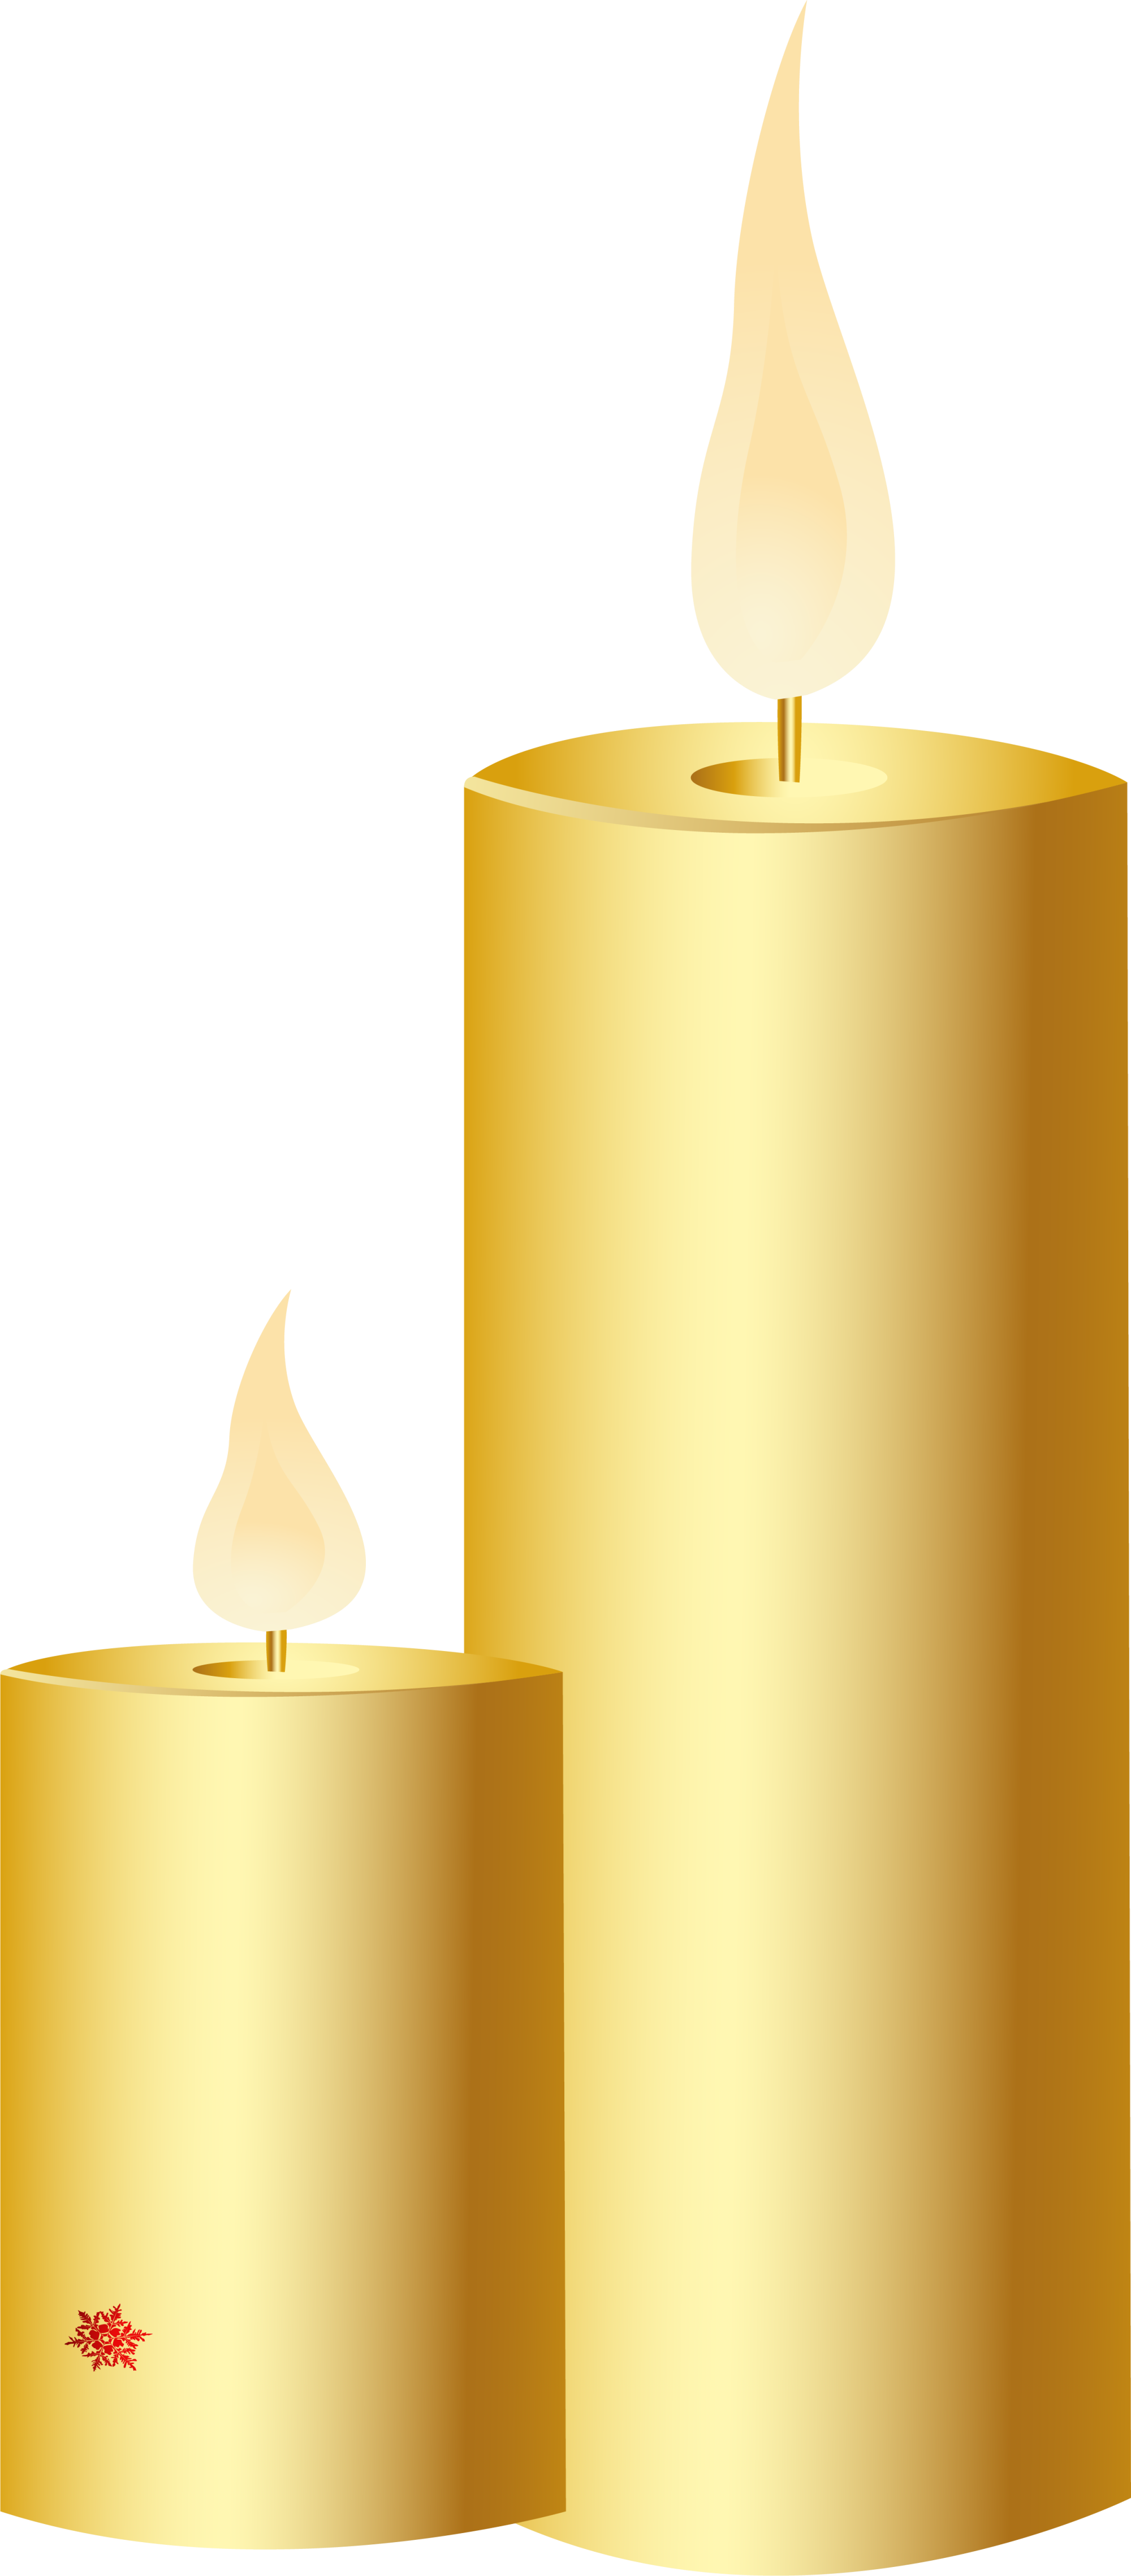 Candle light png. Yellow simple transprent download